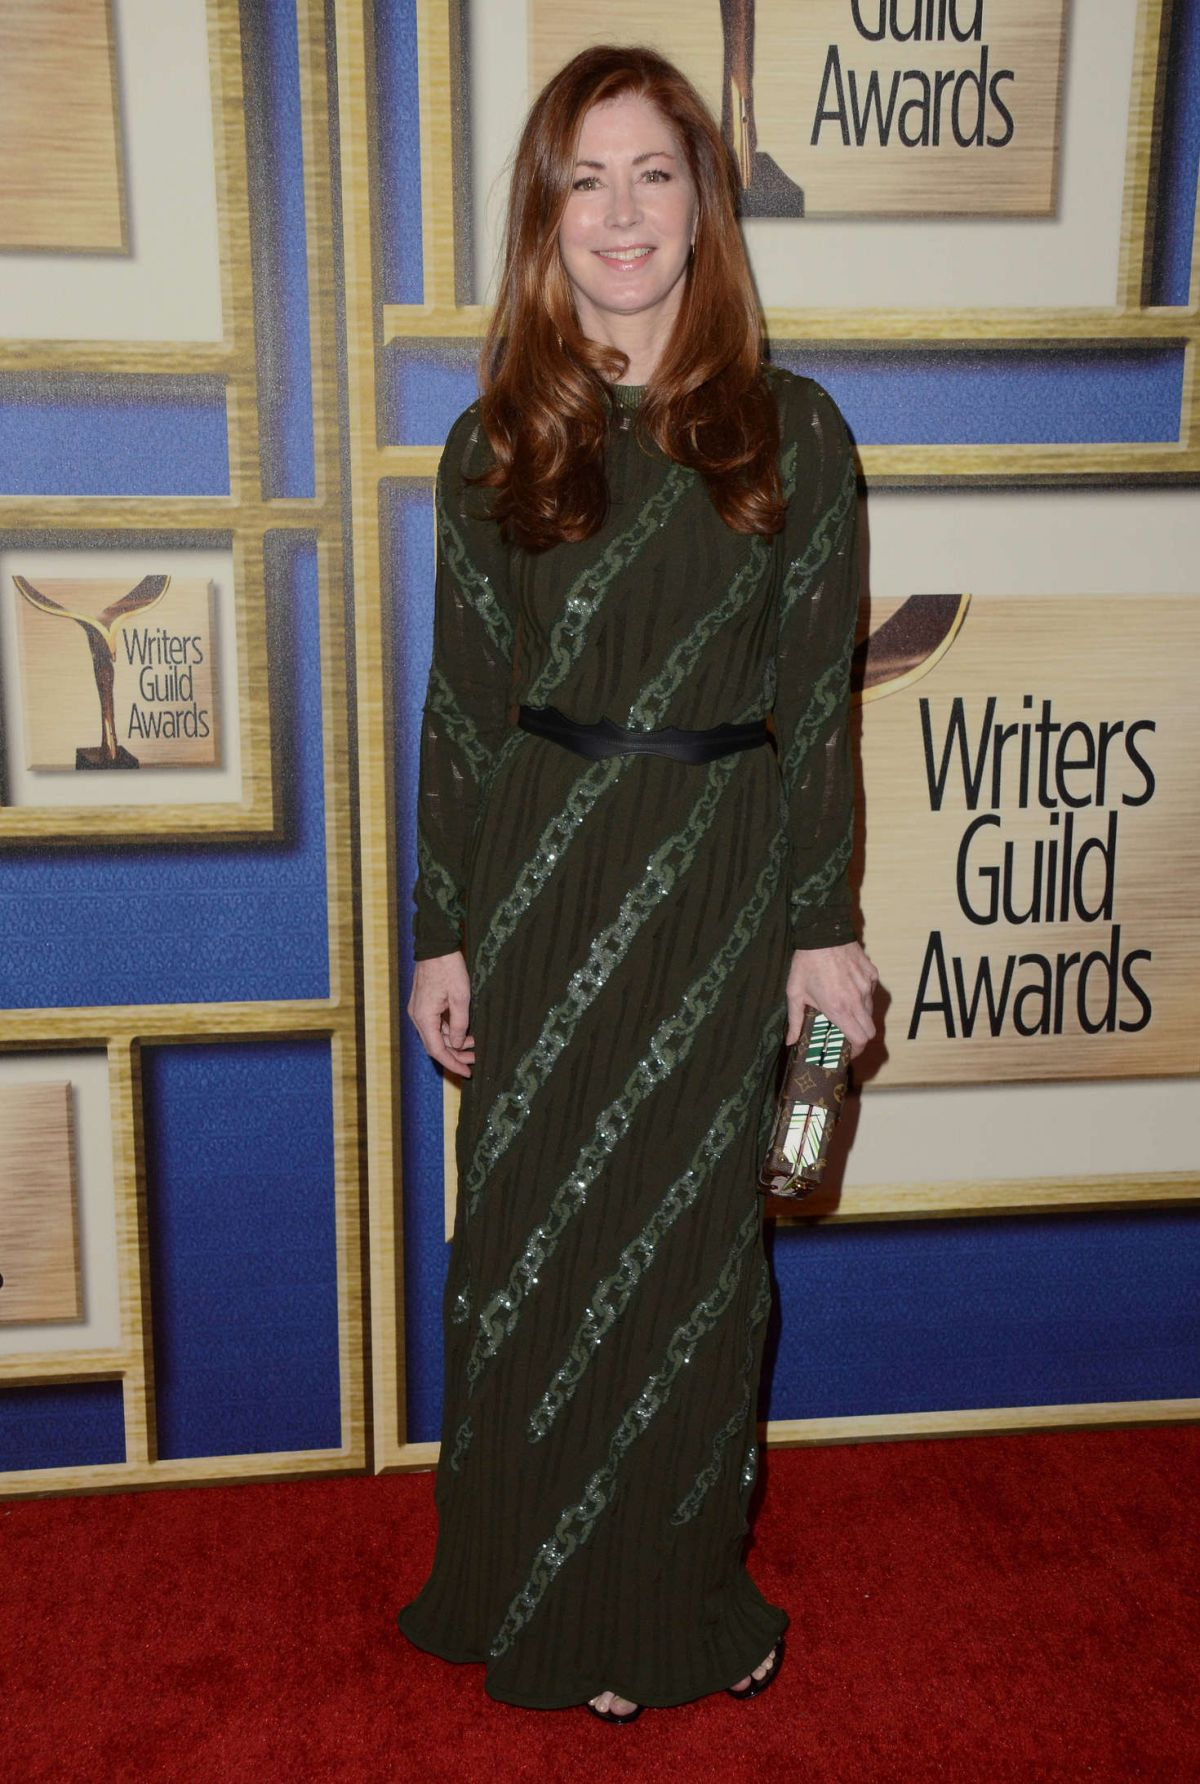 DANA DELANY at 68th Annual Writers Guild Awards in New York 02/13/2016